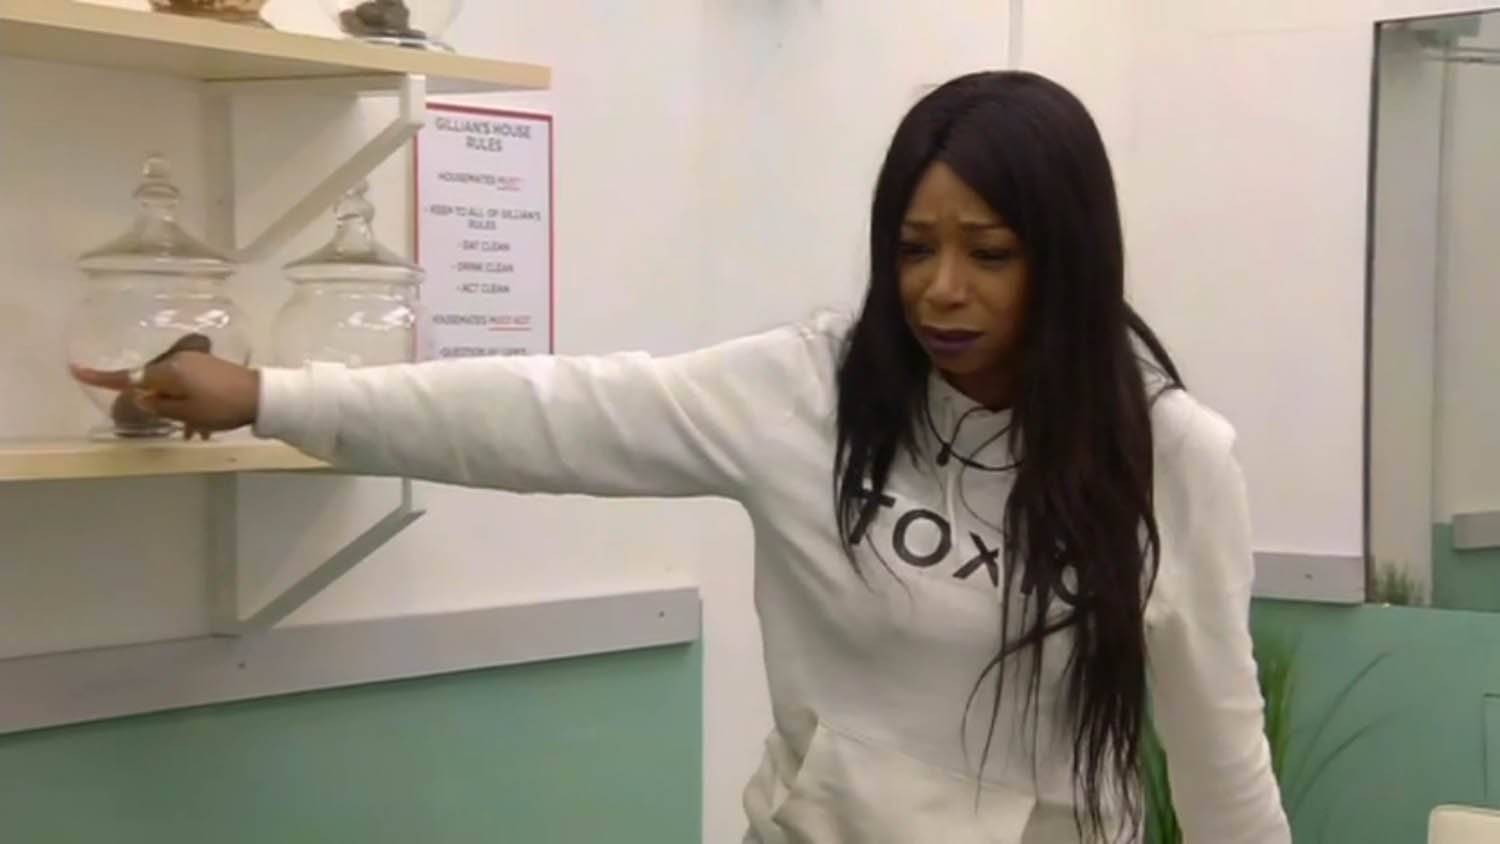 ` ****Ruckas Videograbs**** (01322) 861777 *IMPORTANT* Please credit Channel 5 for this picture. 28/01/16 Celebrity Big Brother DAY 24 SEEN HERE: Tiffany Pollard loses her cool and goes on a rant after Gillian McKeith analyses her poo sample, blaming the rest of her housemates for her stress resulting in her stools to be criticised, last night Grabs from overnight in the CBB house Office (UK) : 01322 861777 Mobile (UK) : 07742 164 106 **IMPORTANT - PLEASE READ** The video grabs supplied by Ruckas Pictures always remain the copyright of the programme makers, we provide a service to purely capture and supply the images to the client, securing the copyright of the images will always remain the responsibility of the publisher at all times. Standard terms, conditions & minimum fees apply to our videograbs unless varied by agreement prior to publication.